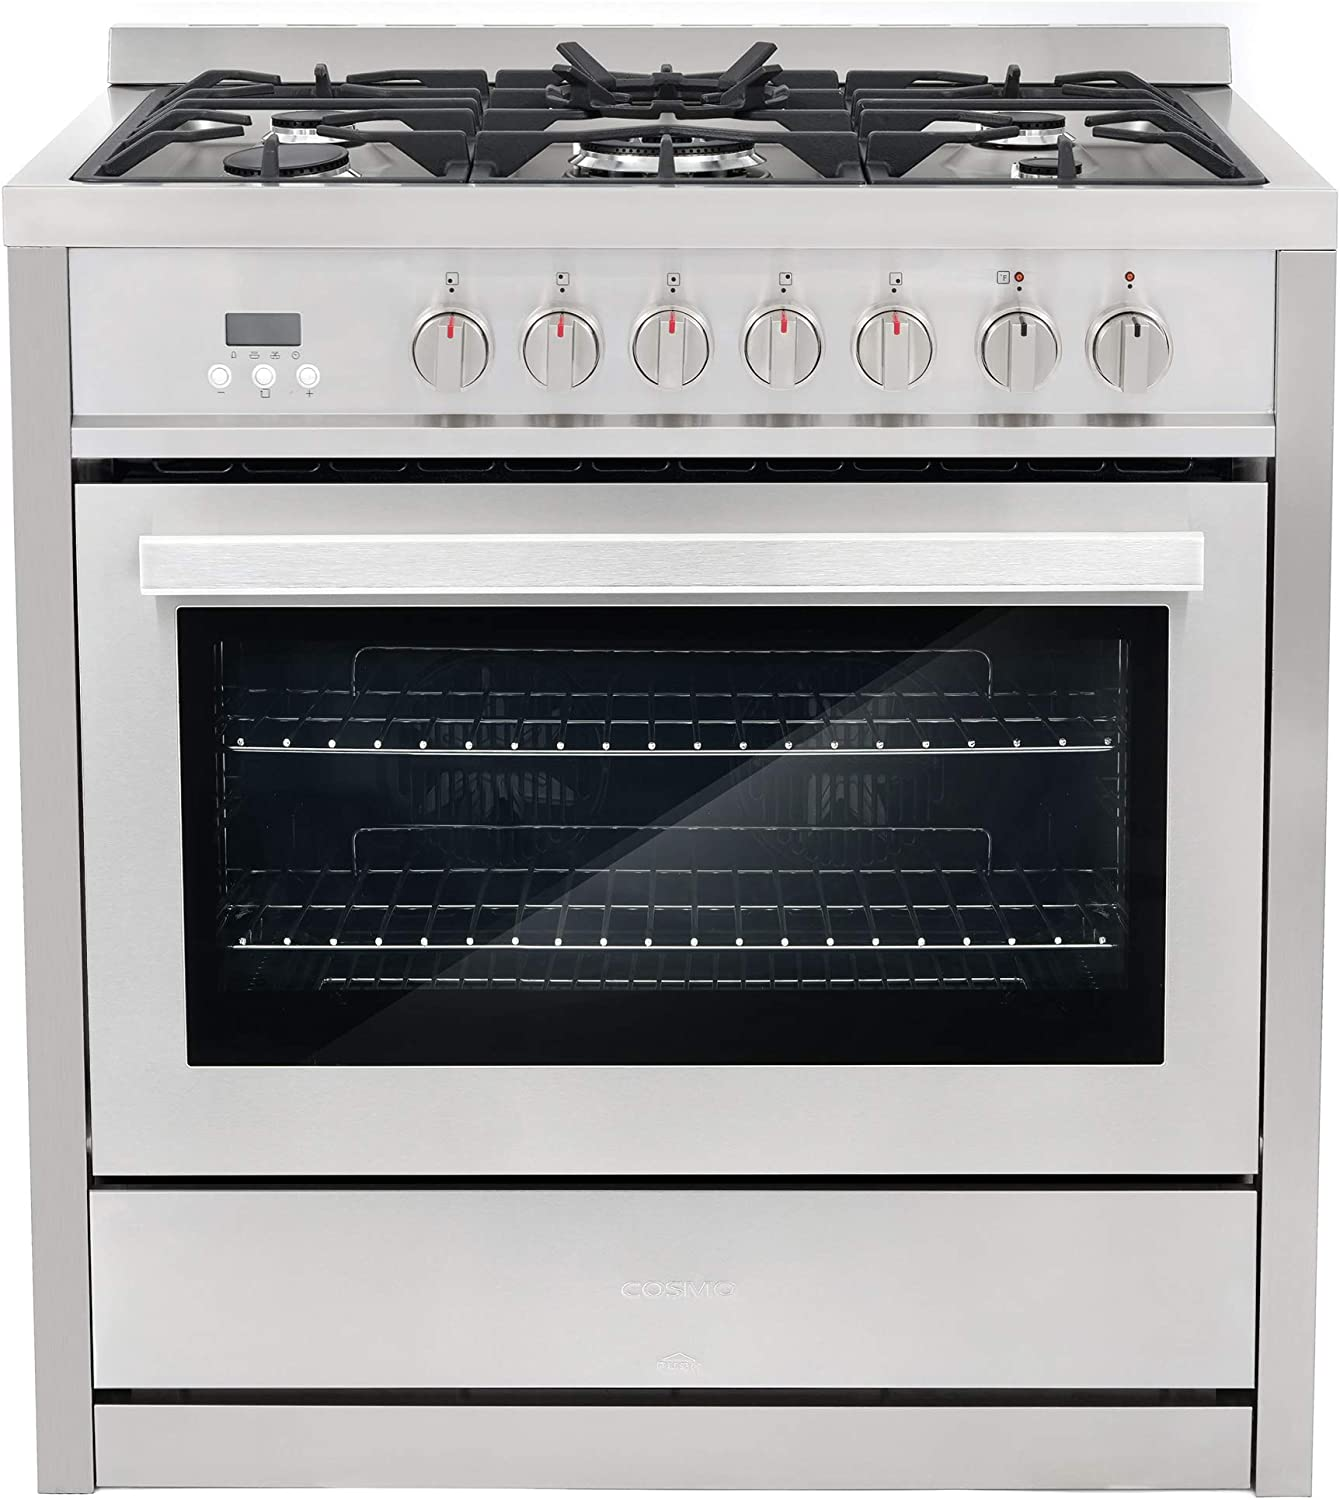 Choose Top 8 Best gas range for Home Chef in 2020 12